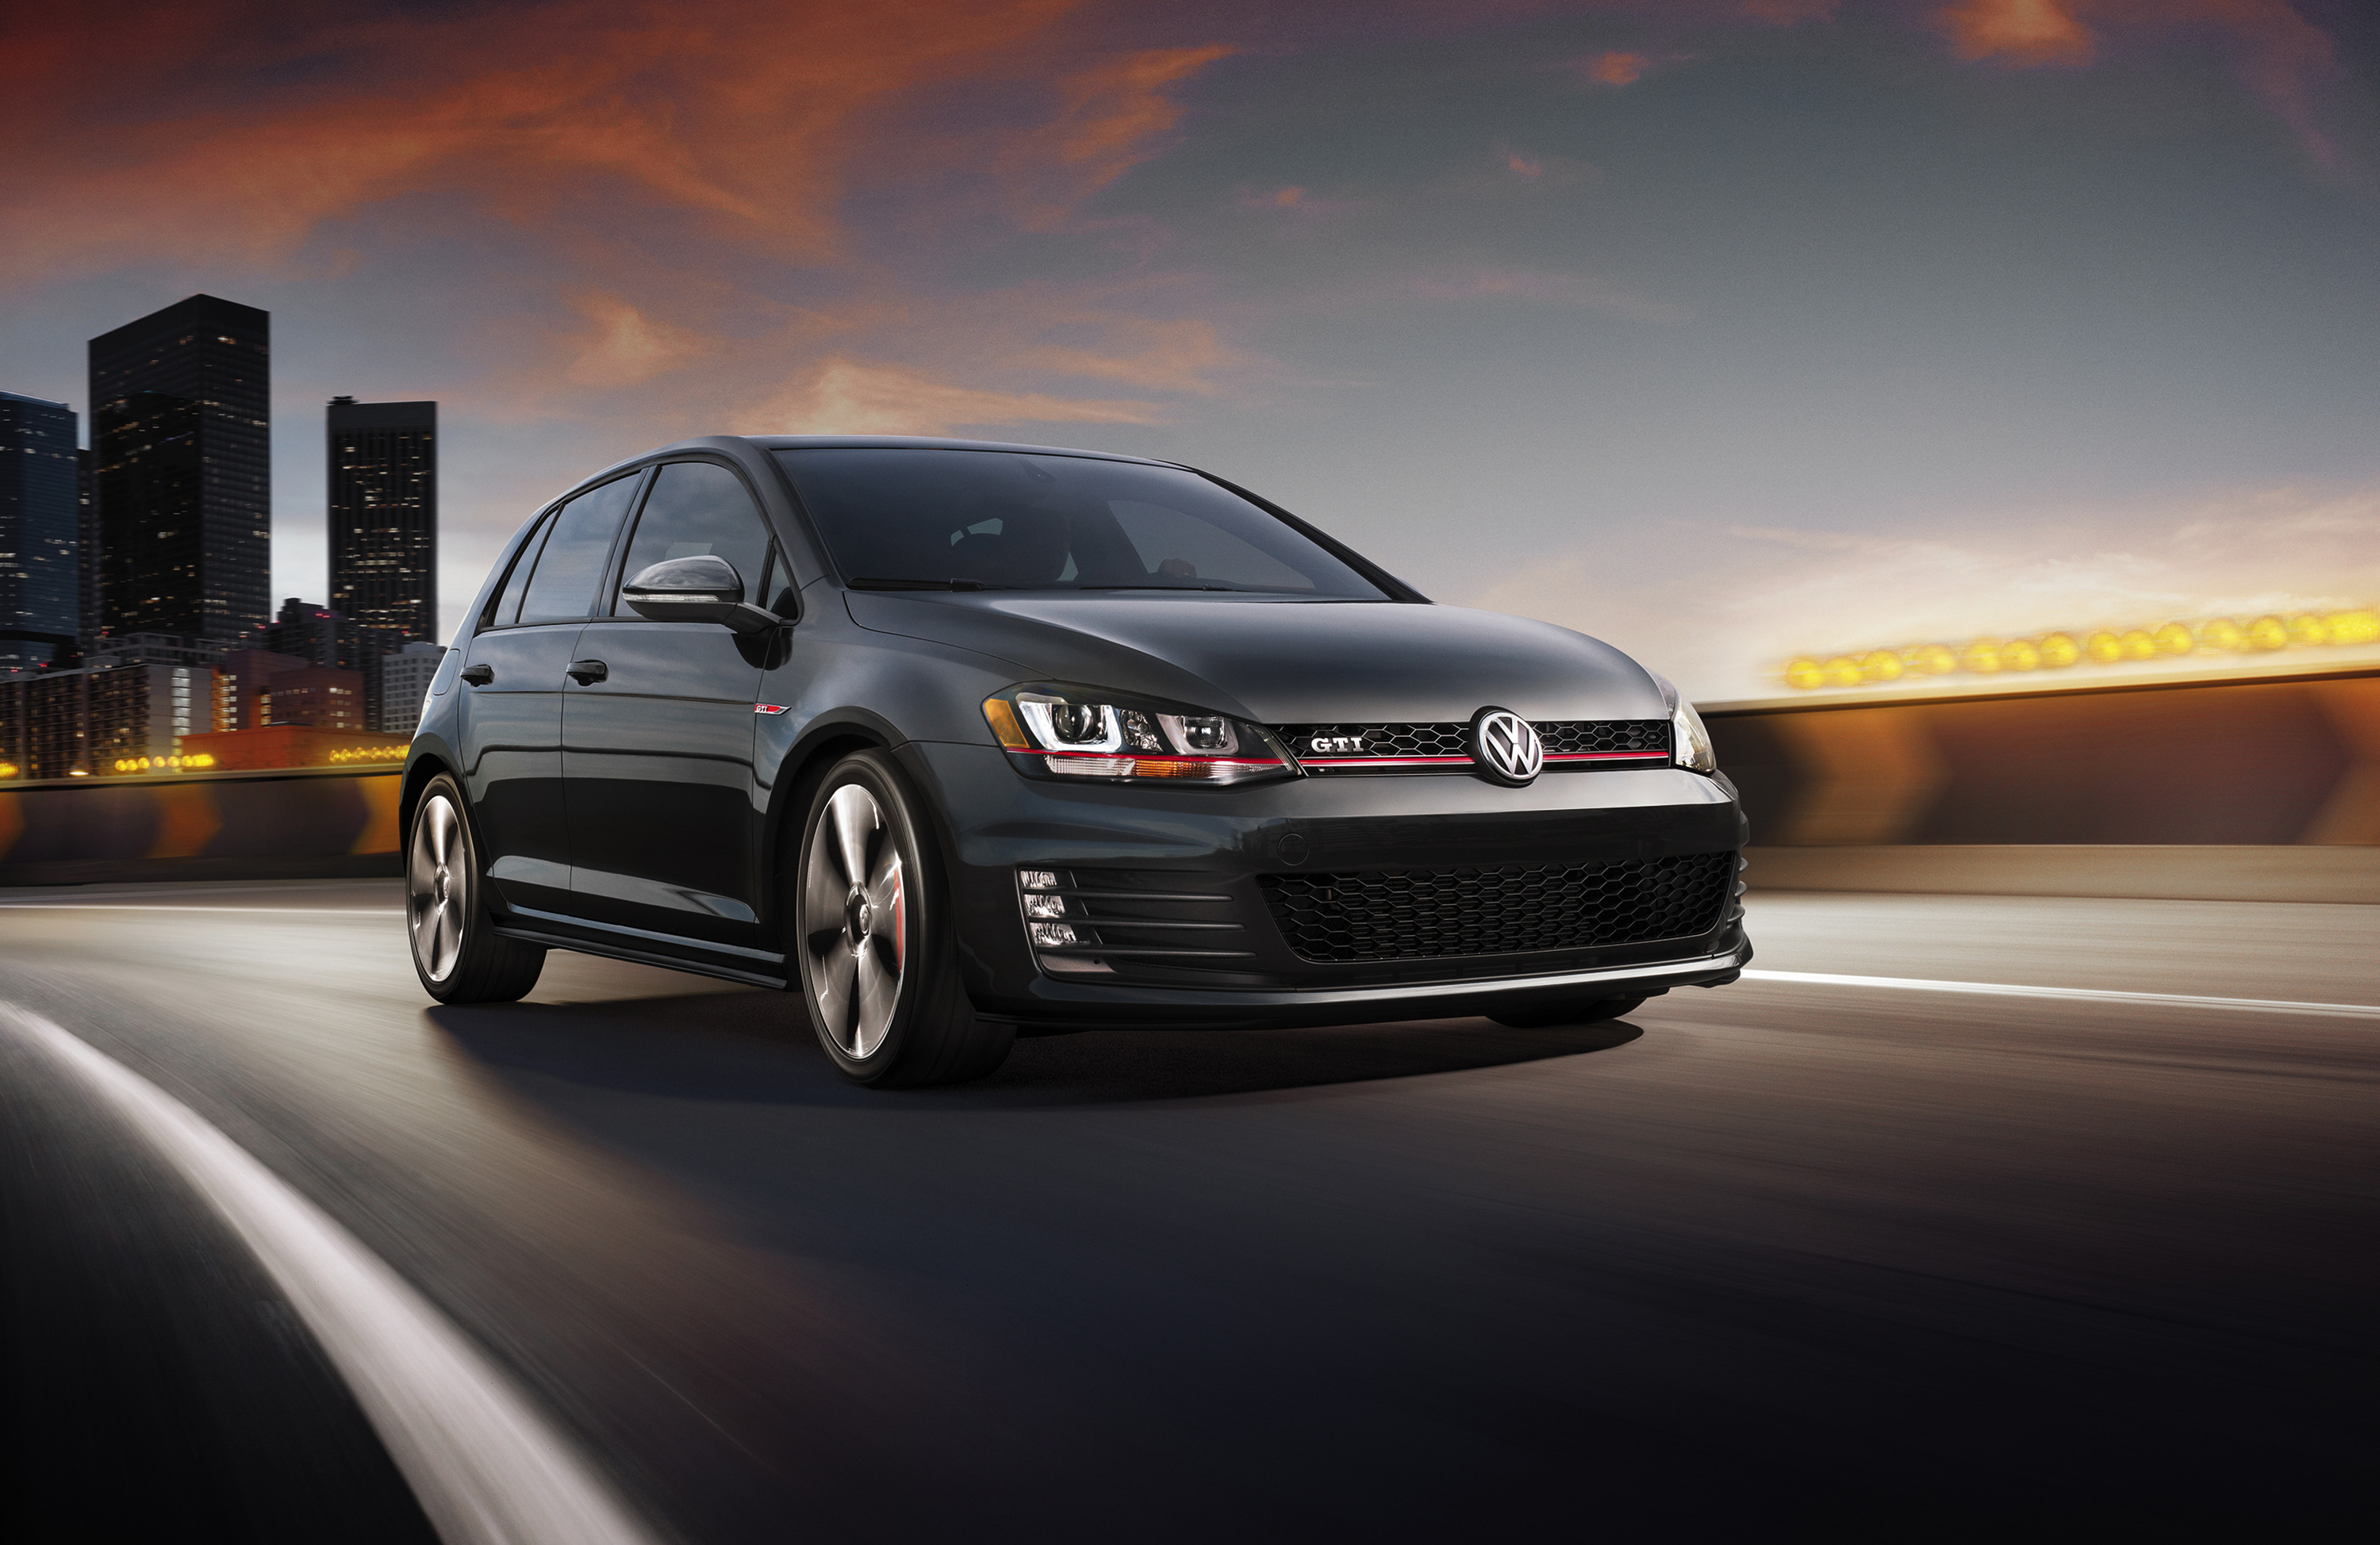 5 Features Of The All New 2015 Volkswagen GTI